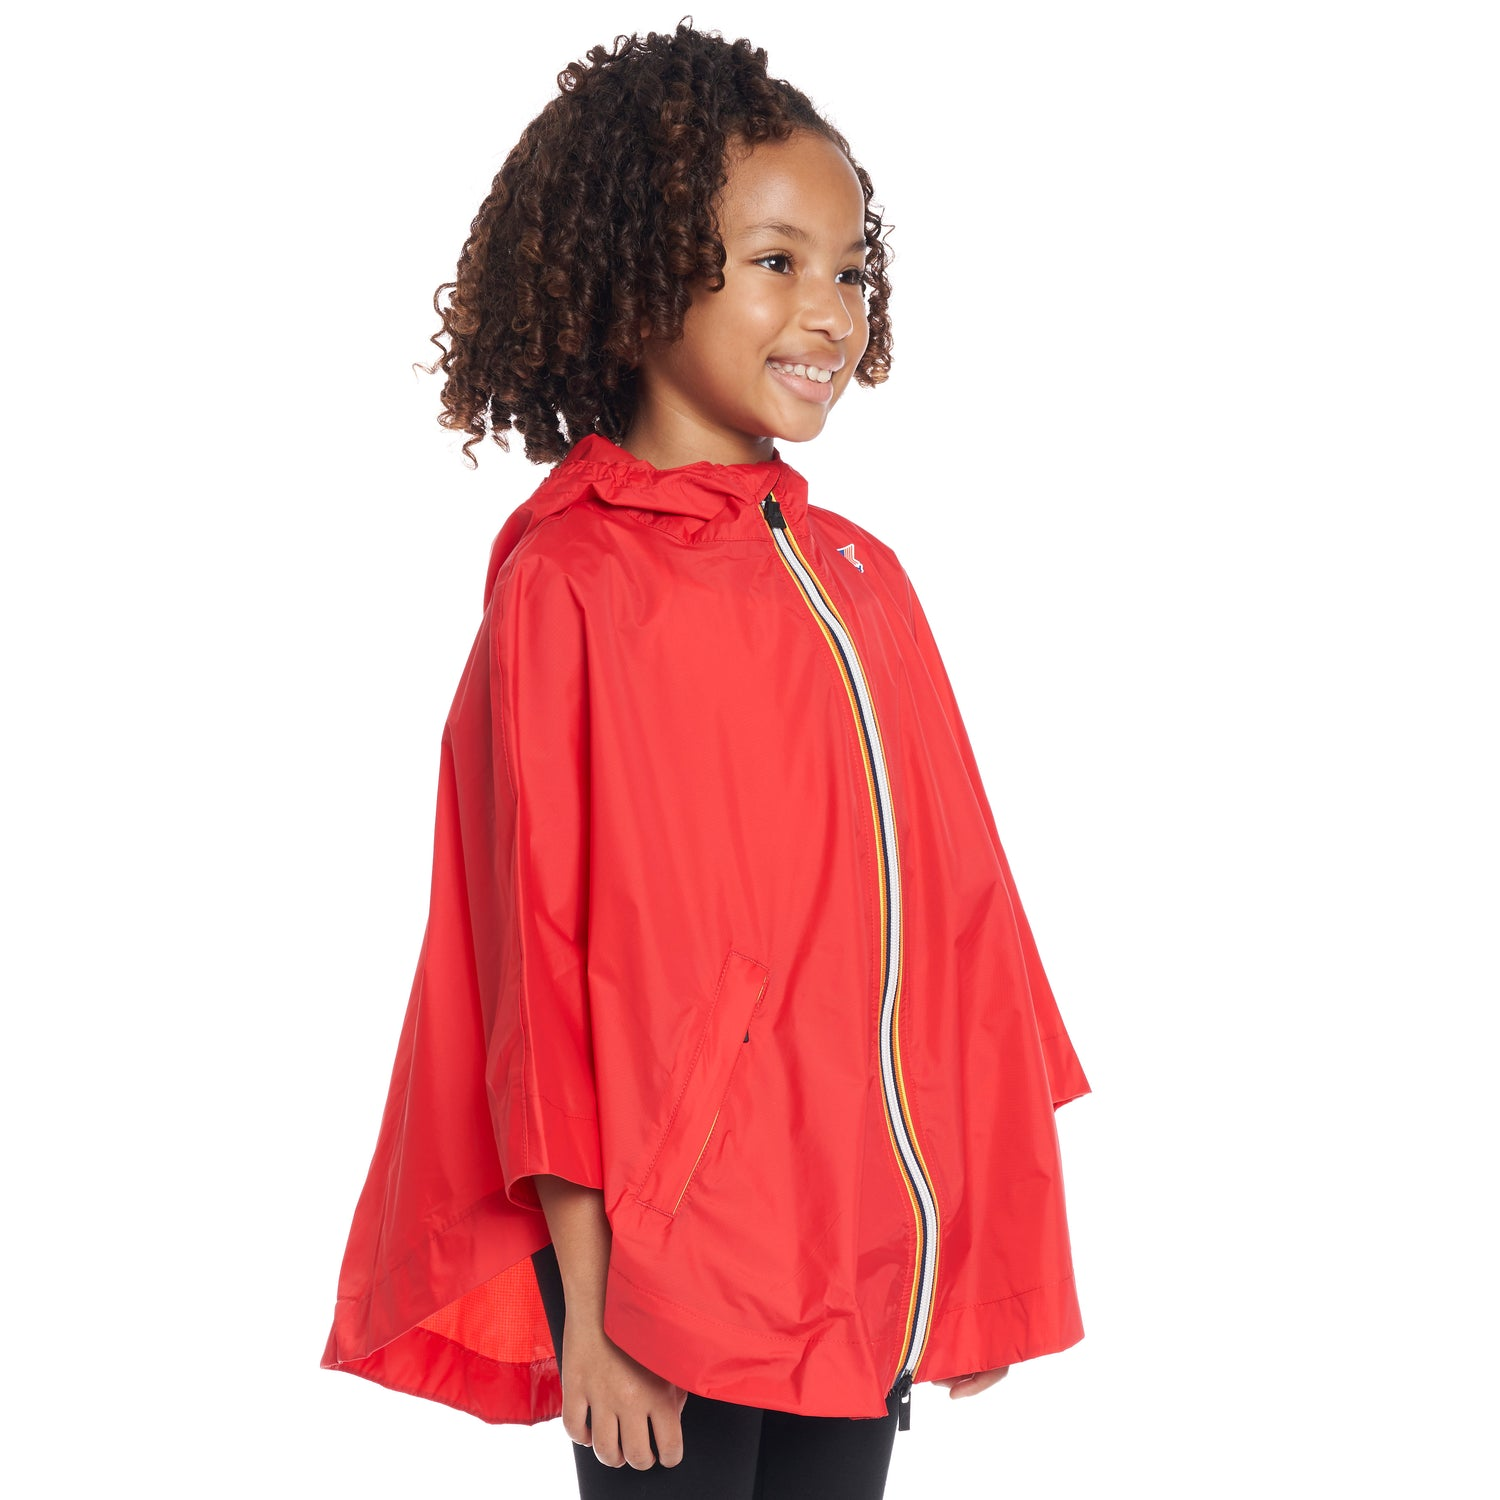 Kids Le Vrai 3.0 Morgan Poncho Red - Side